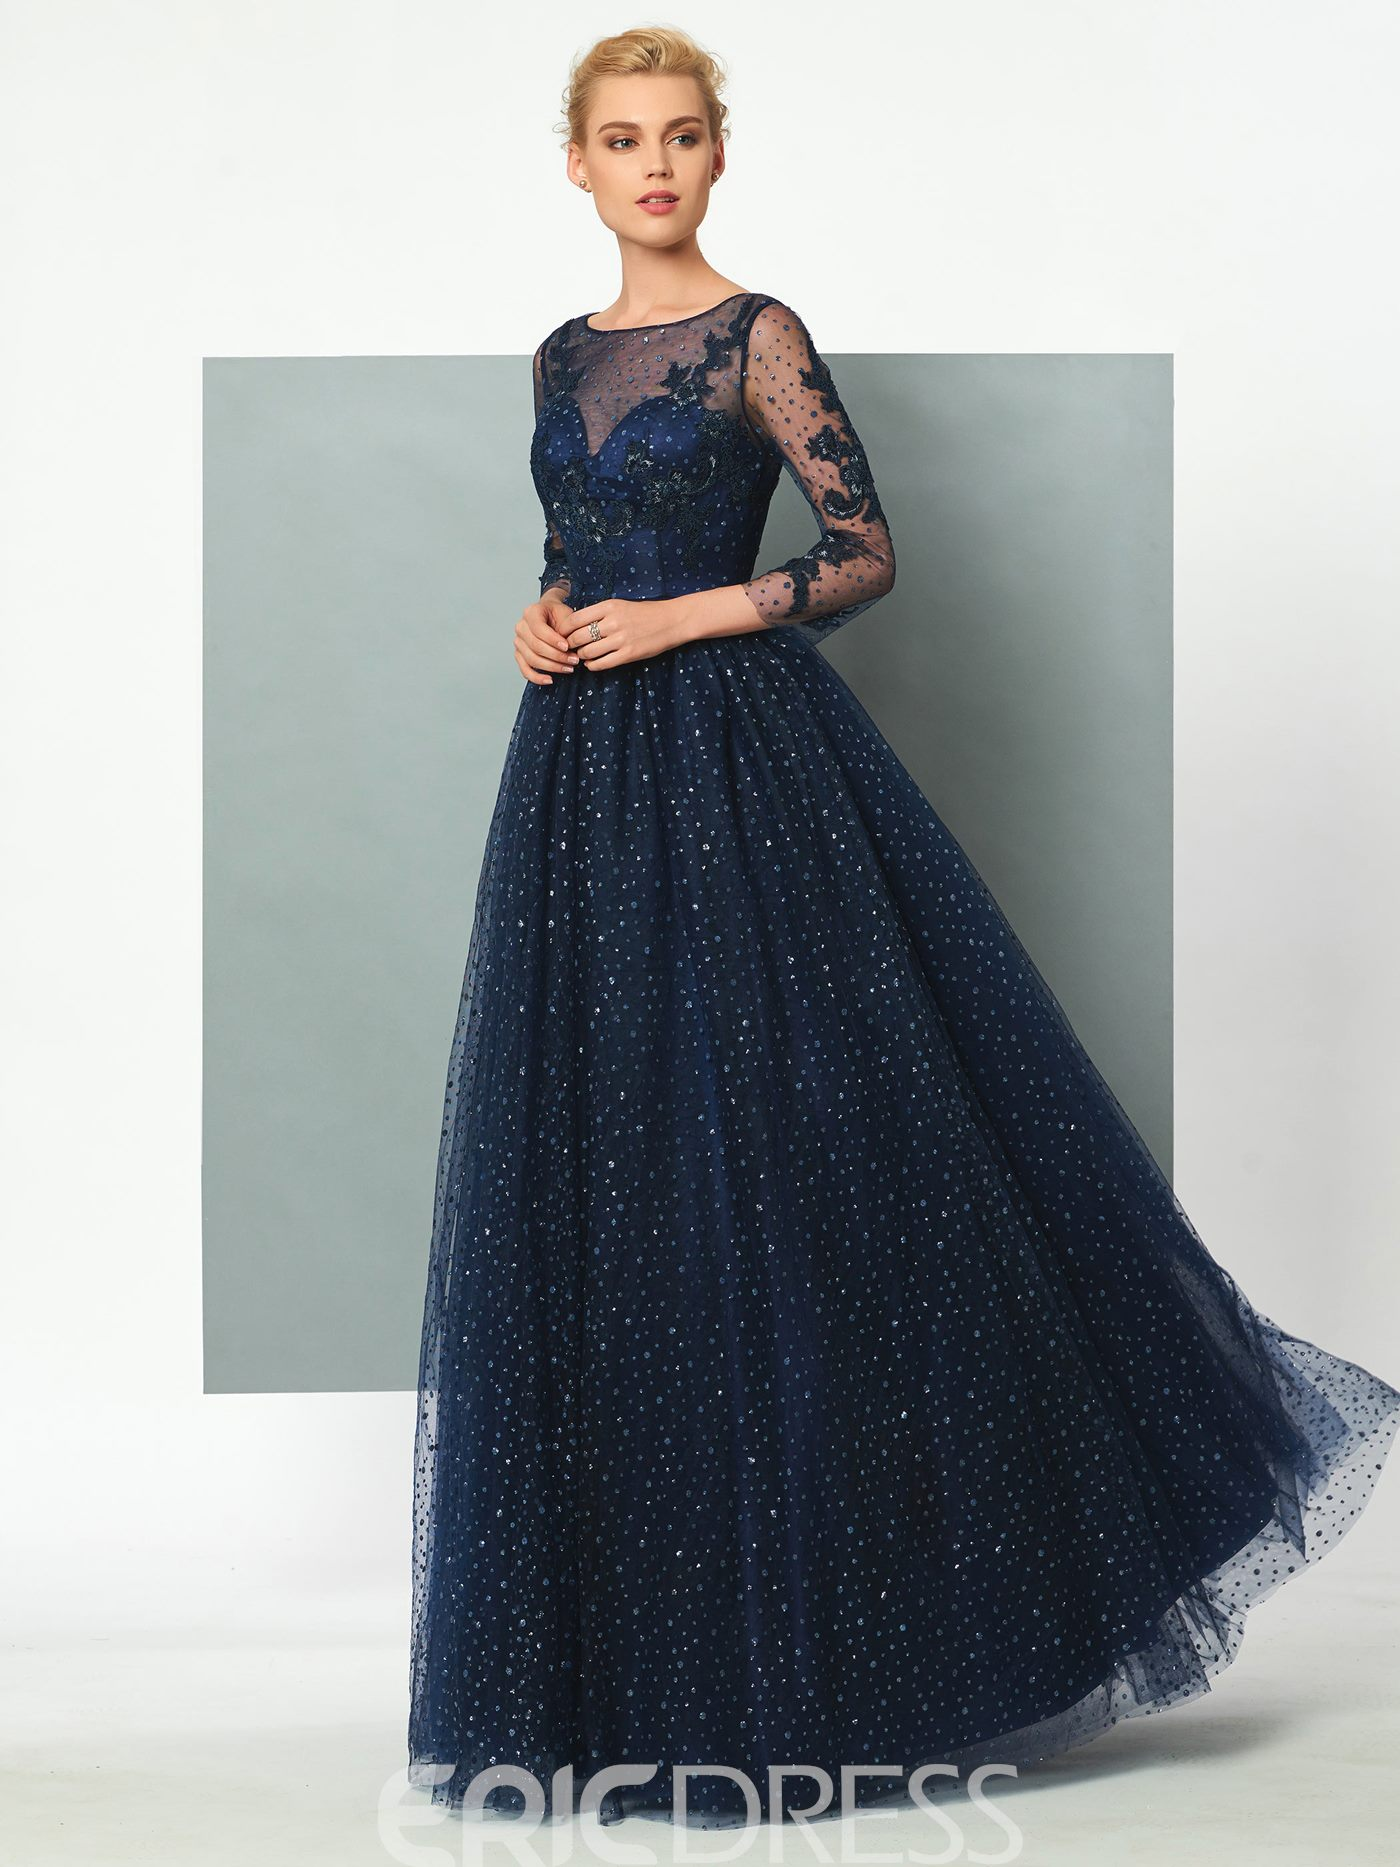 Ericdress 3/4 Sleeve Sheer Applique Tulle Button Back Floor Length Evening Dress